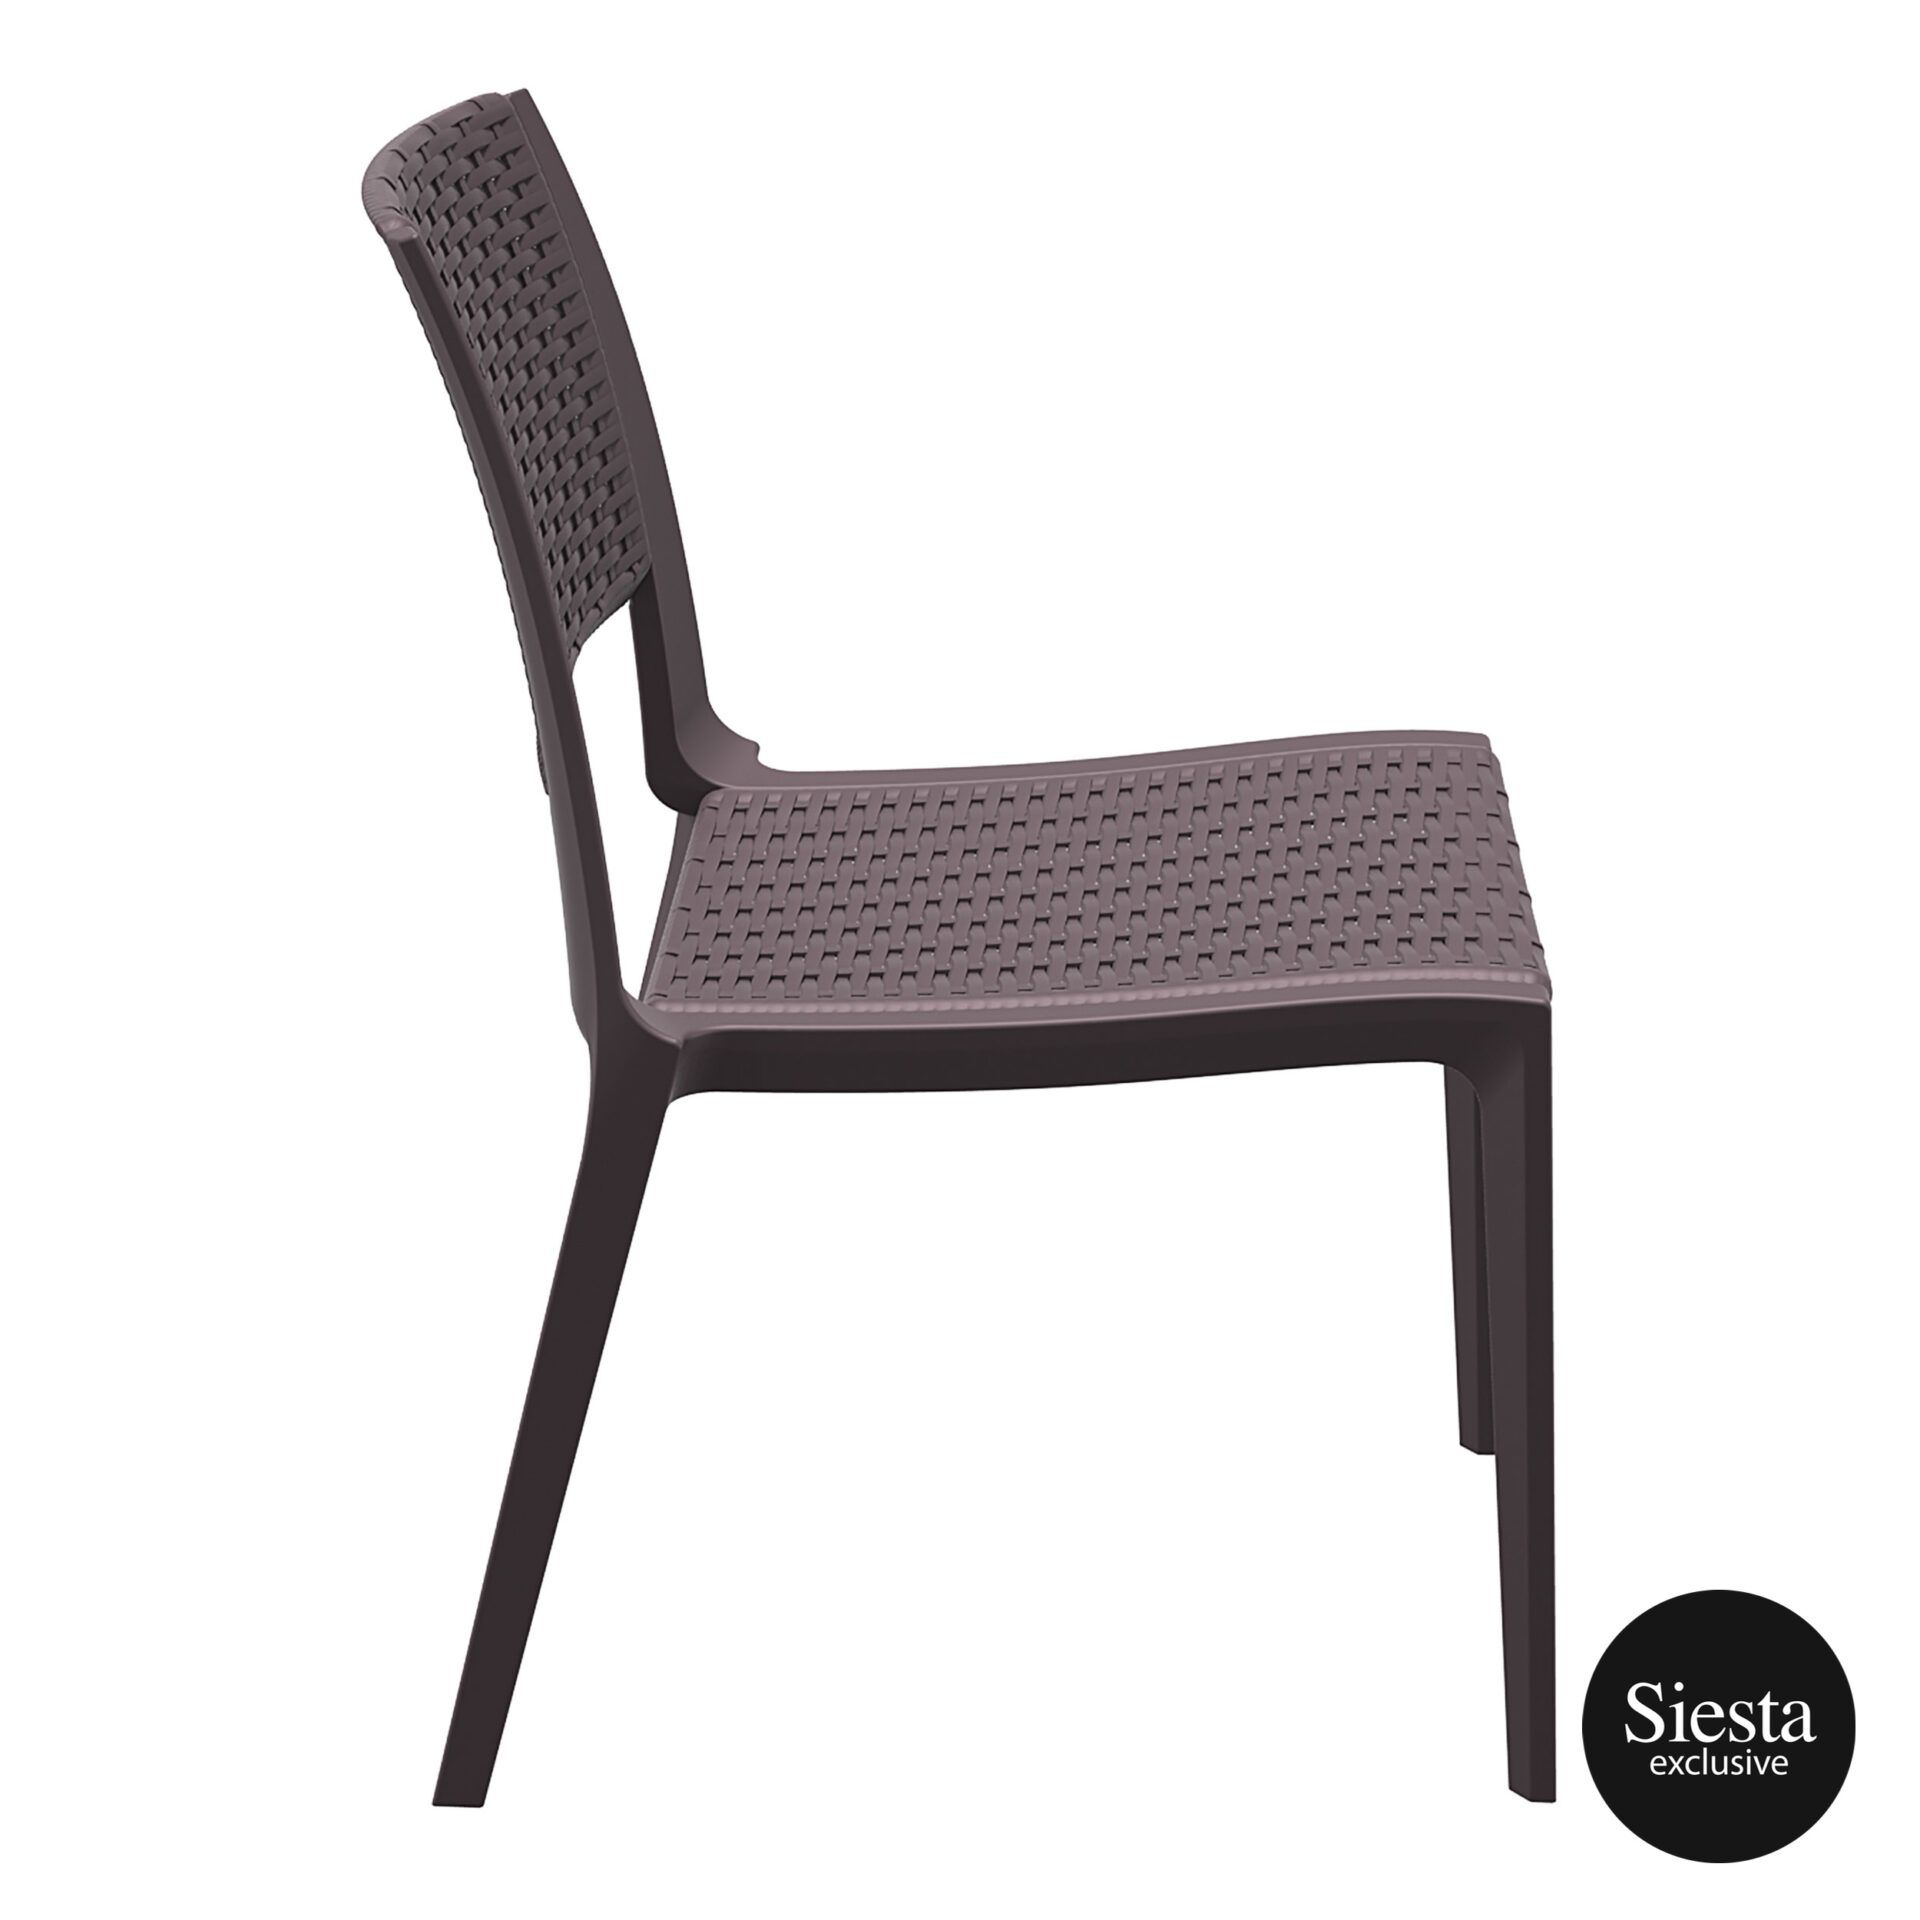 resin rattan outdoor cafe verona chair brown side 1